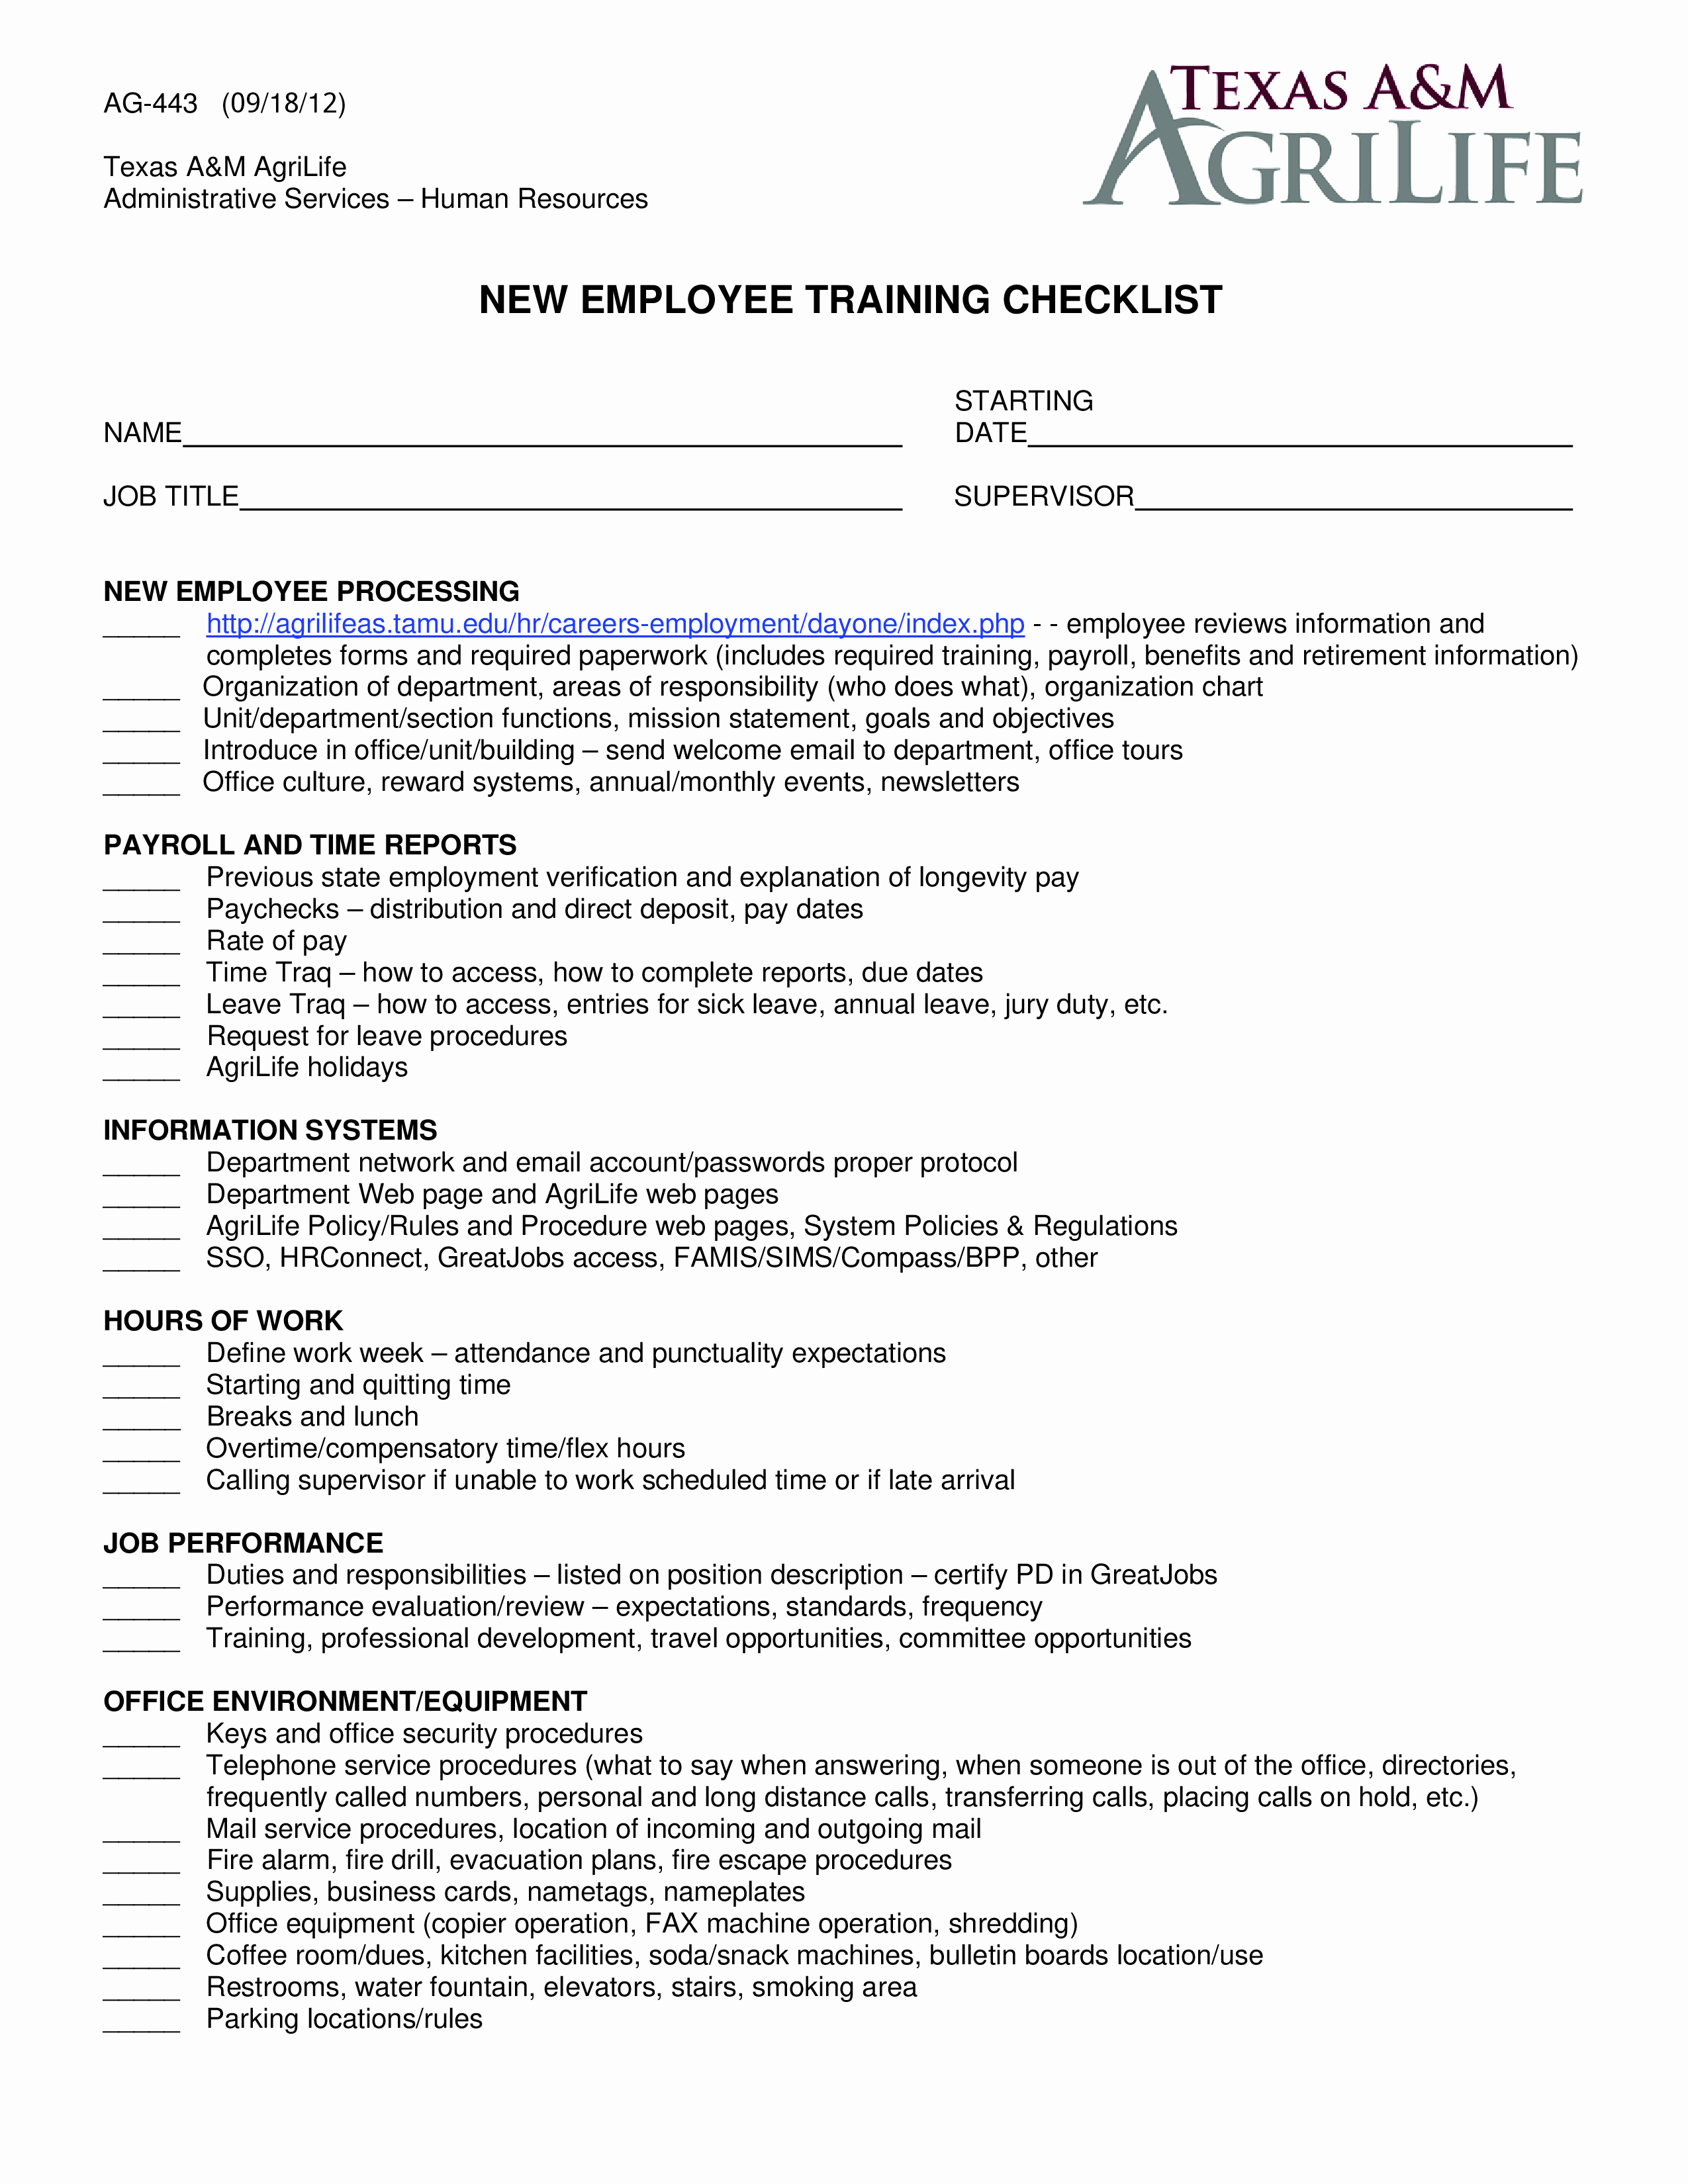 Training New Employees Template Luxury Free New Employee Training Checklist